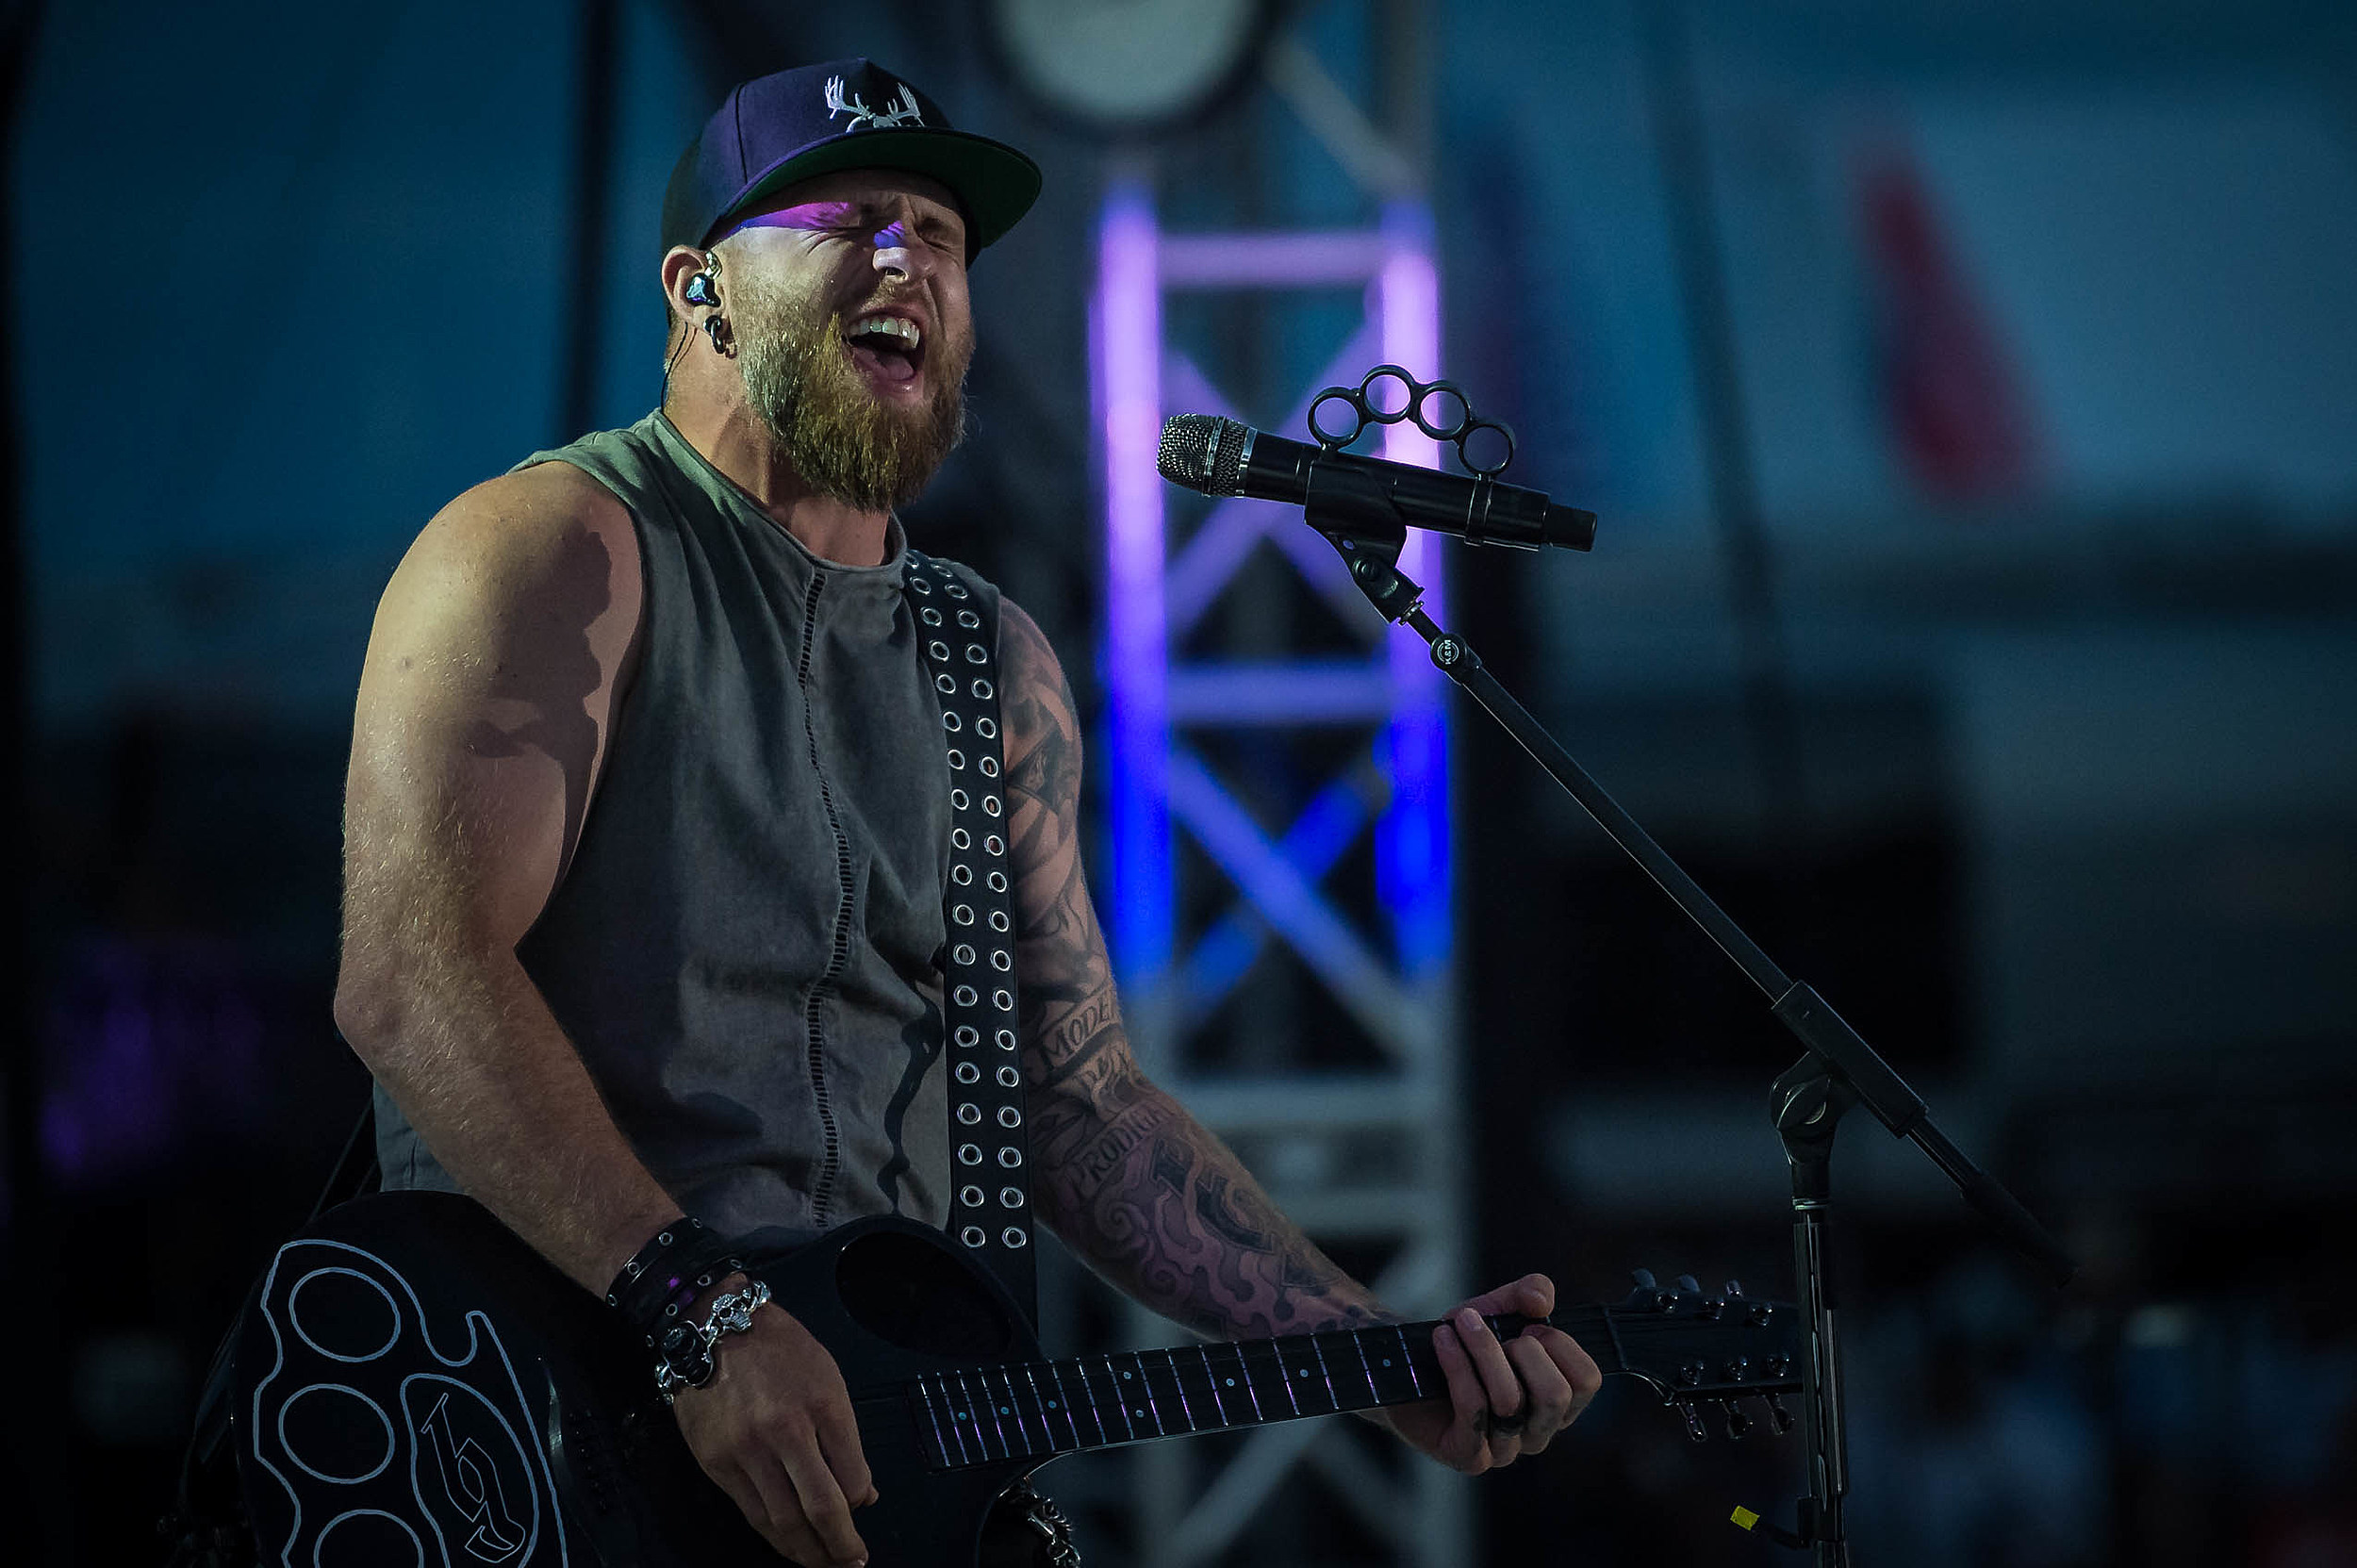 Iheartcountry Festival 2020.Brantley Gilbert Will Fire T Up On Tour In 2020